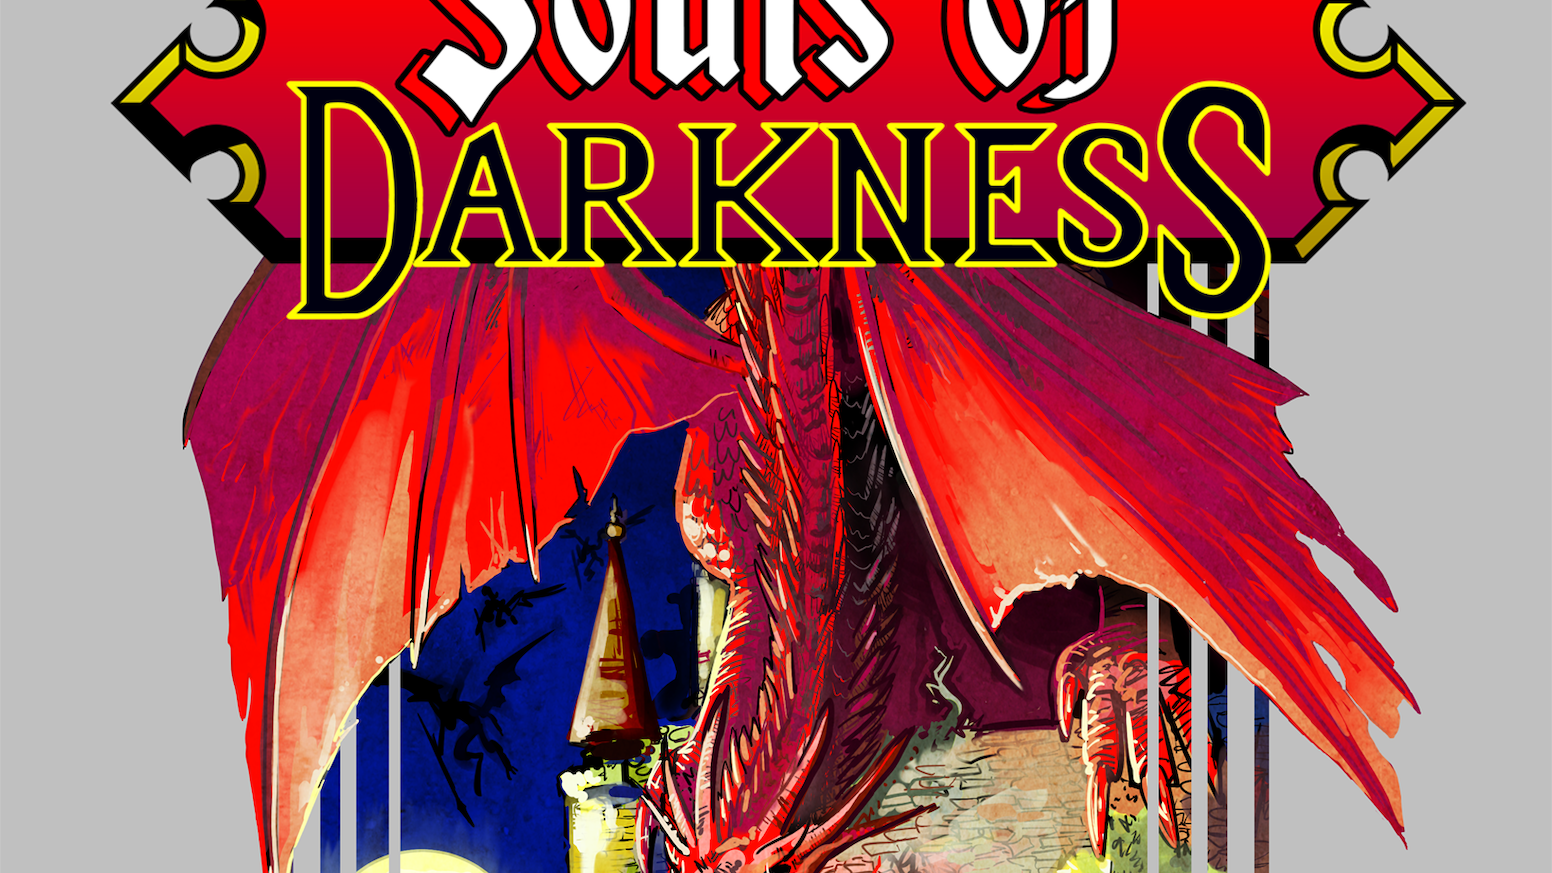 Remember the Worlds of Power books? I'm making a parody book in that style but all about Dark Souls.